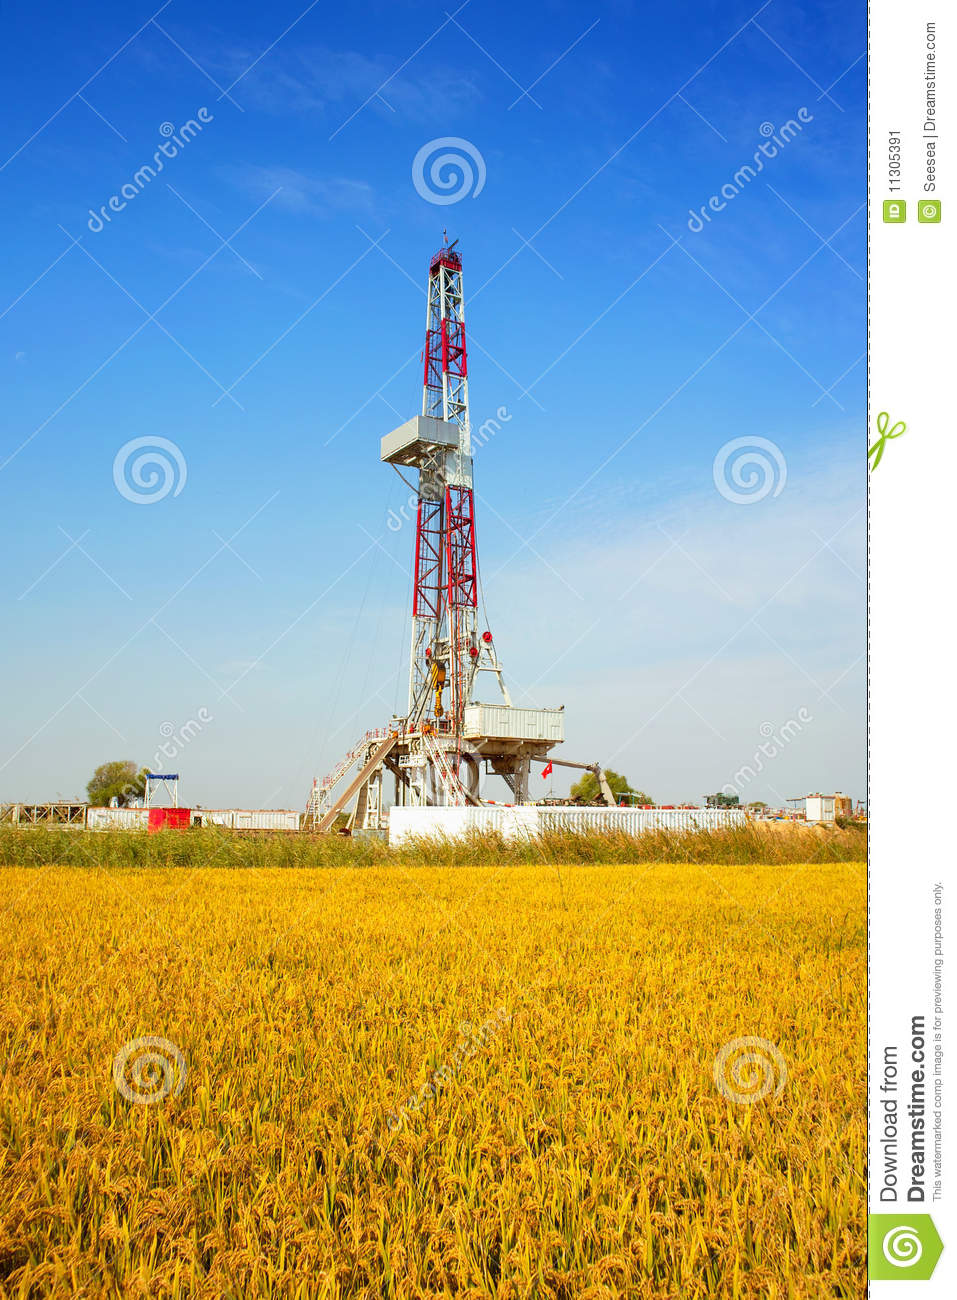 Land Drilling Rig Stock Image   Image  11305391